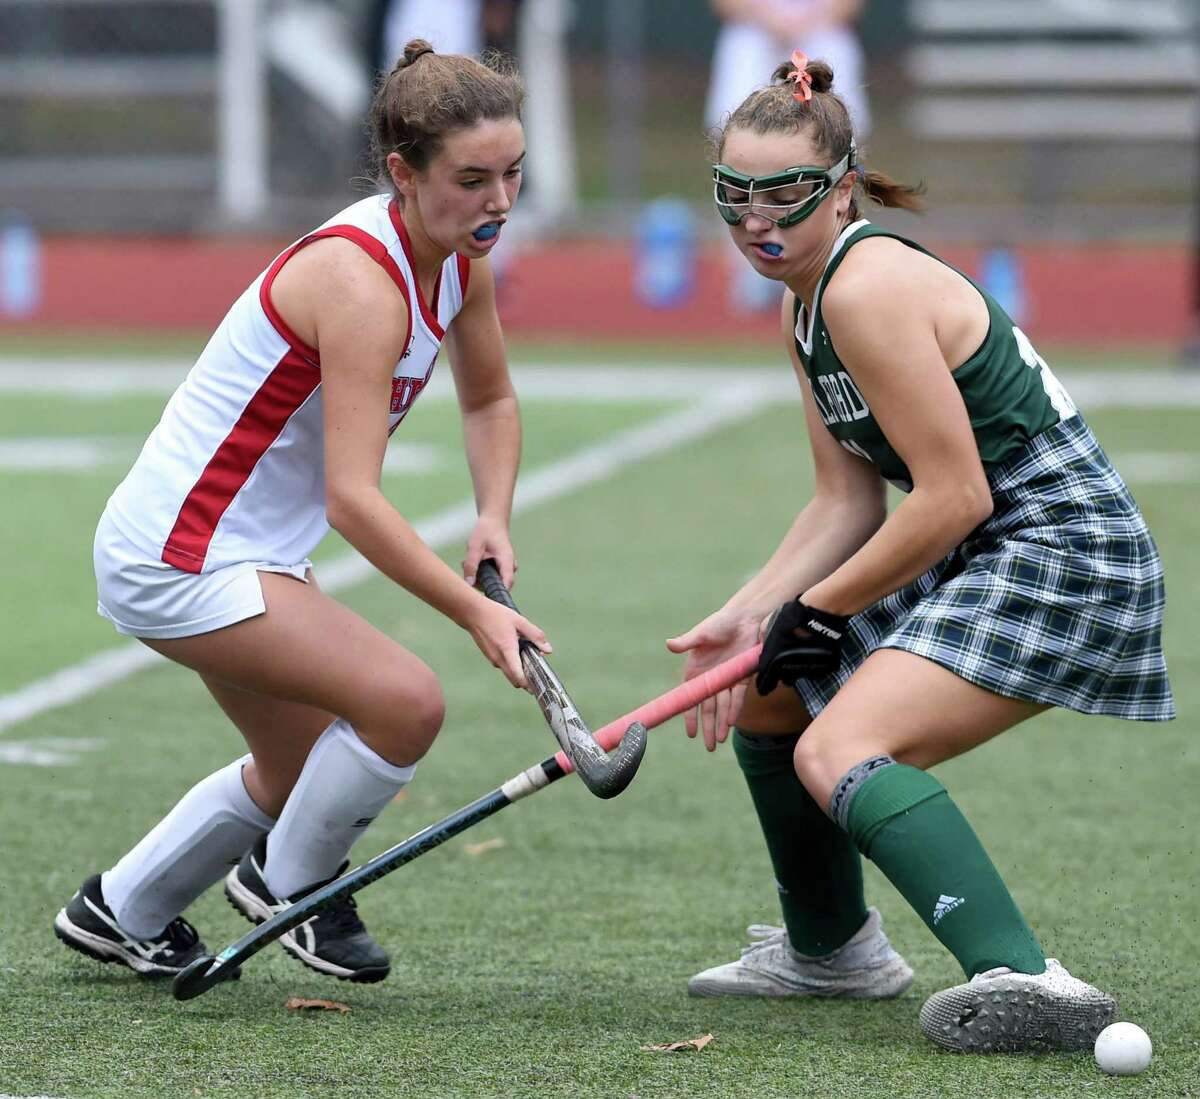 Cheshire's Leah Black, left, and Maddie Epke of Guilford fight for the ball in the SCC Division A championship at Cheshire High last week.